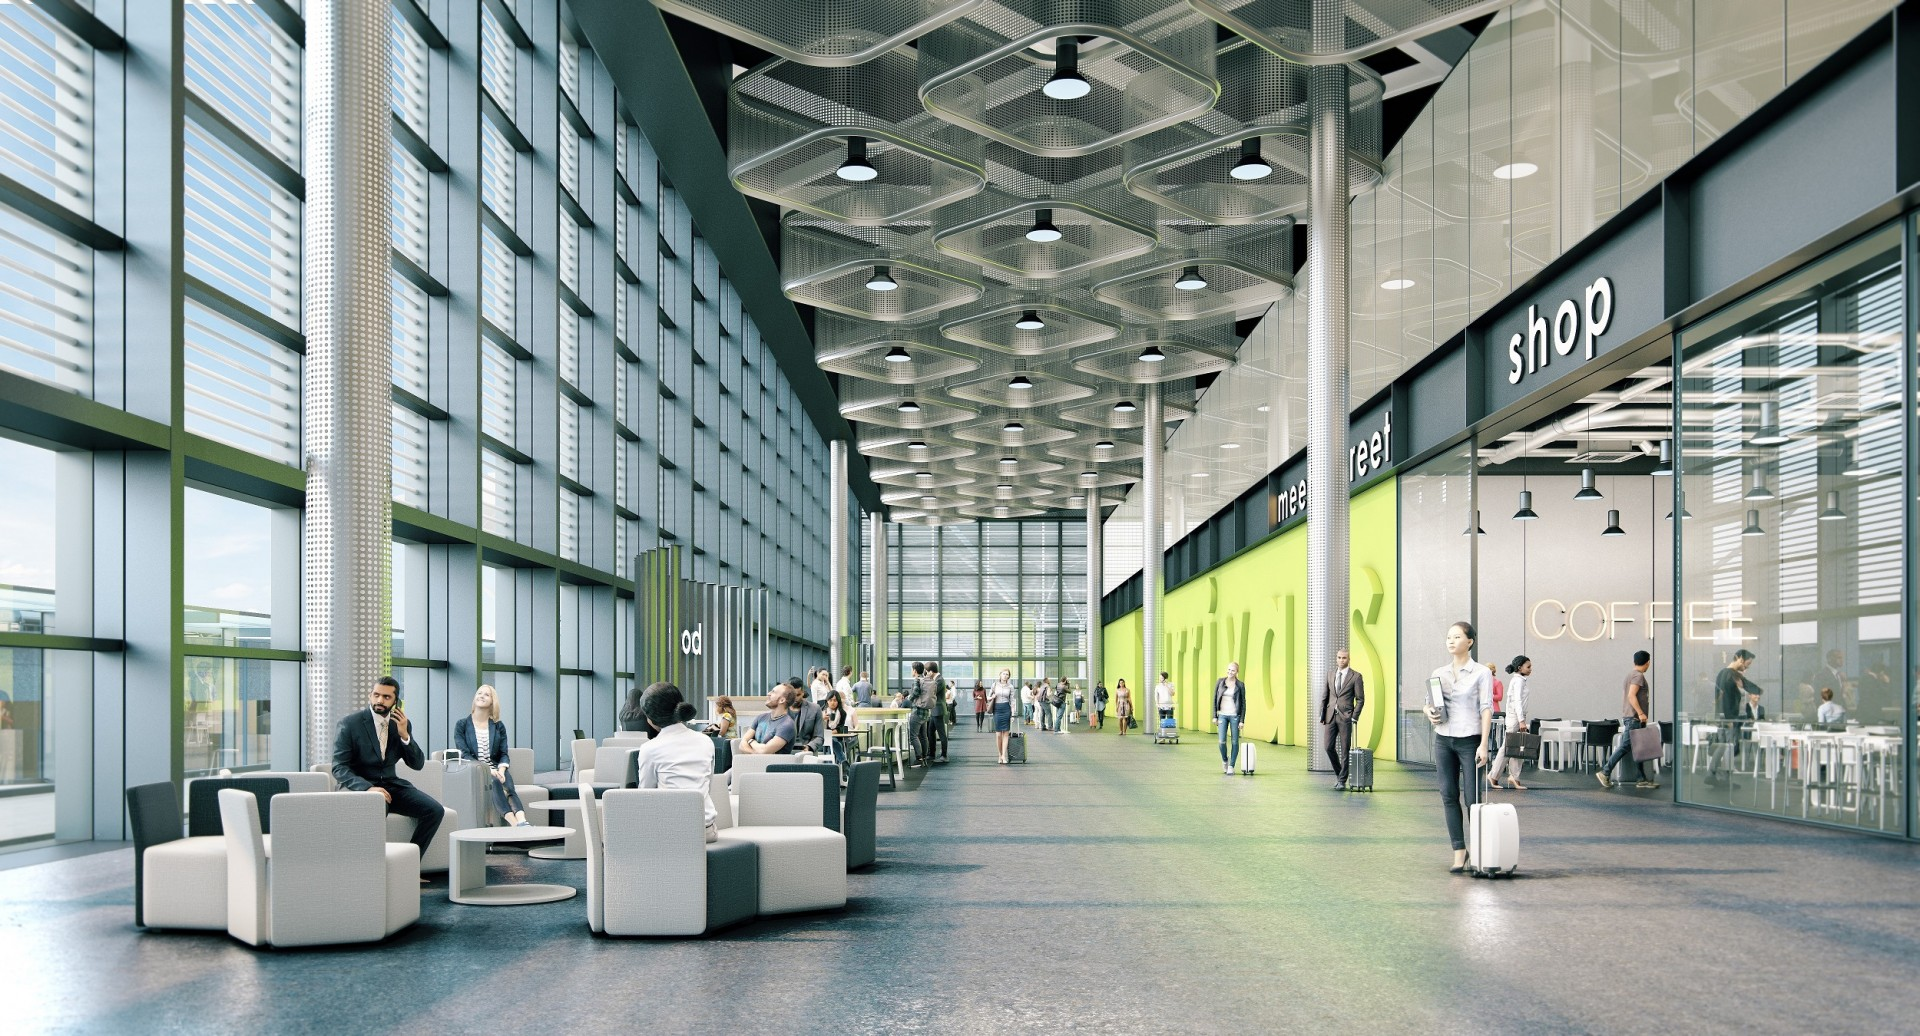 London Stansted's new arrivals terminal which is due to open in 2020.